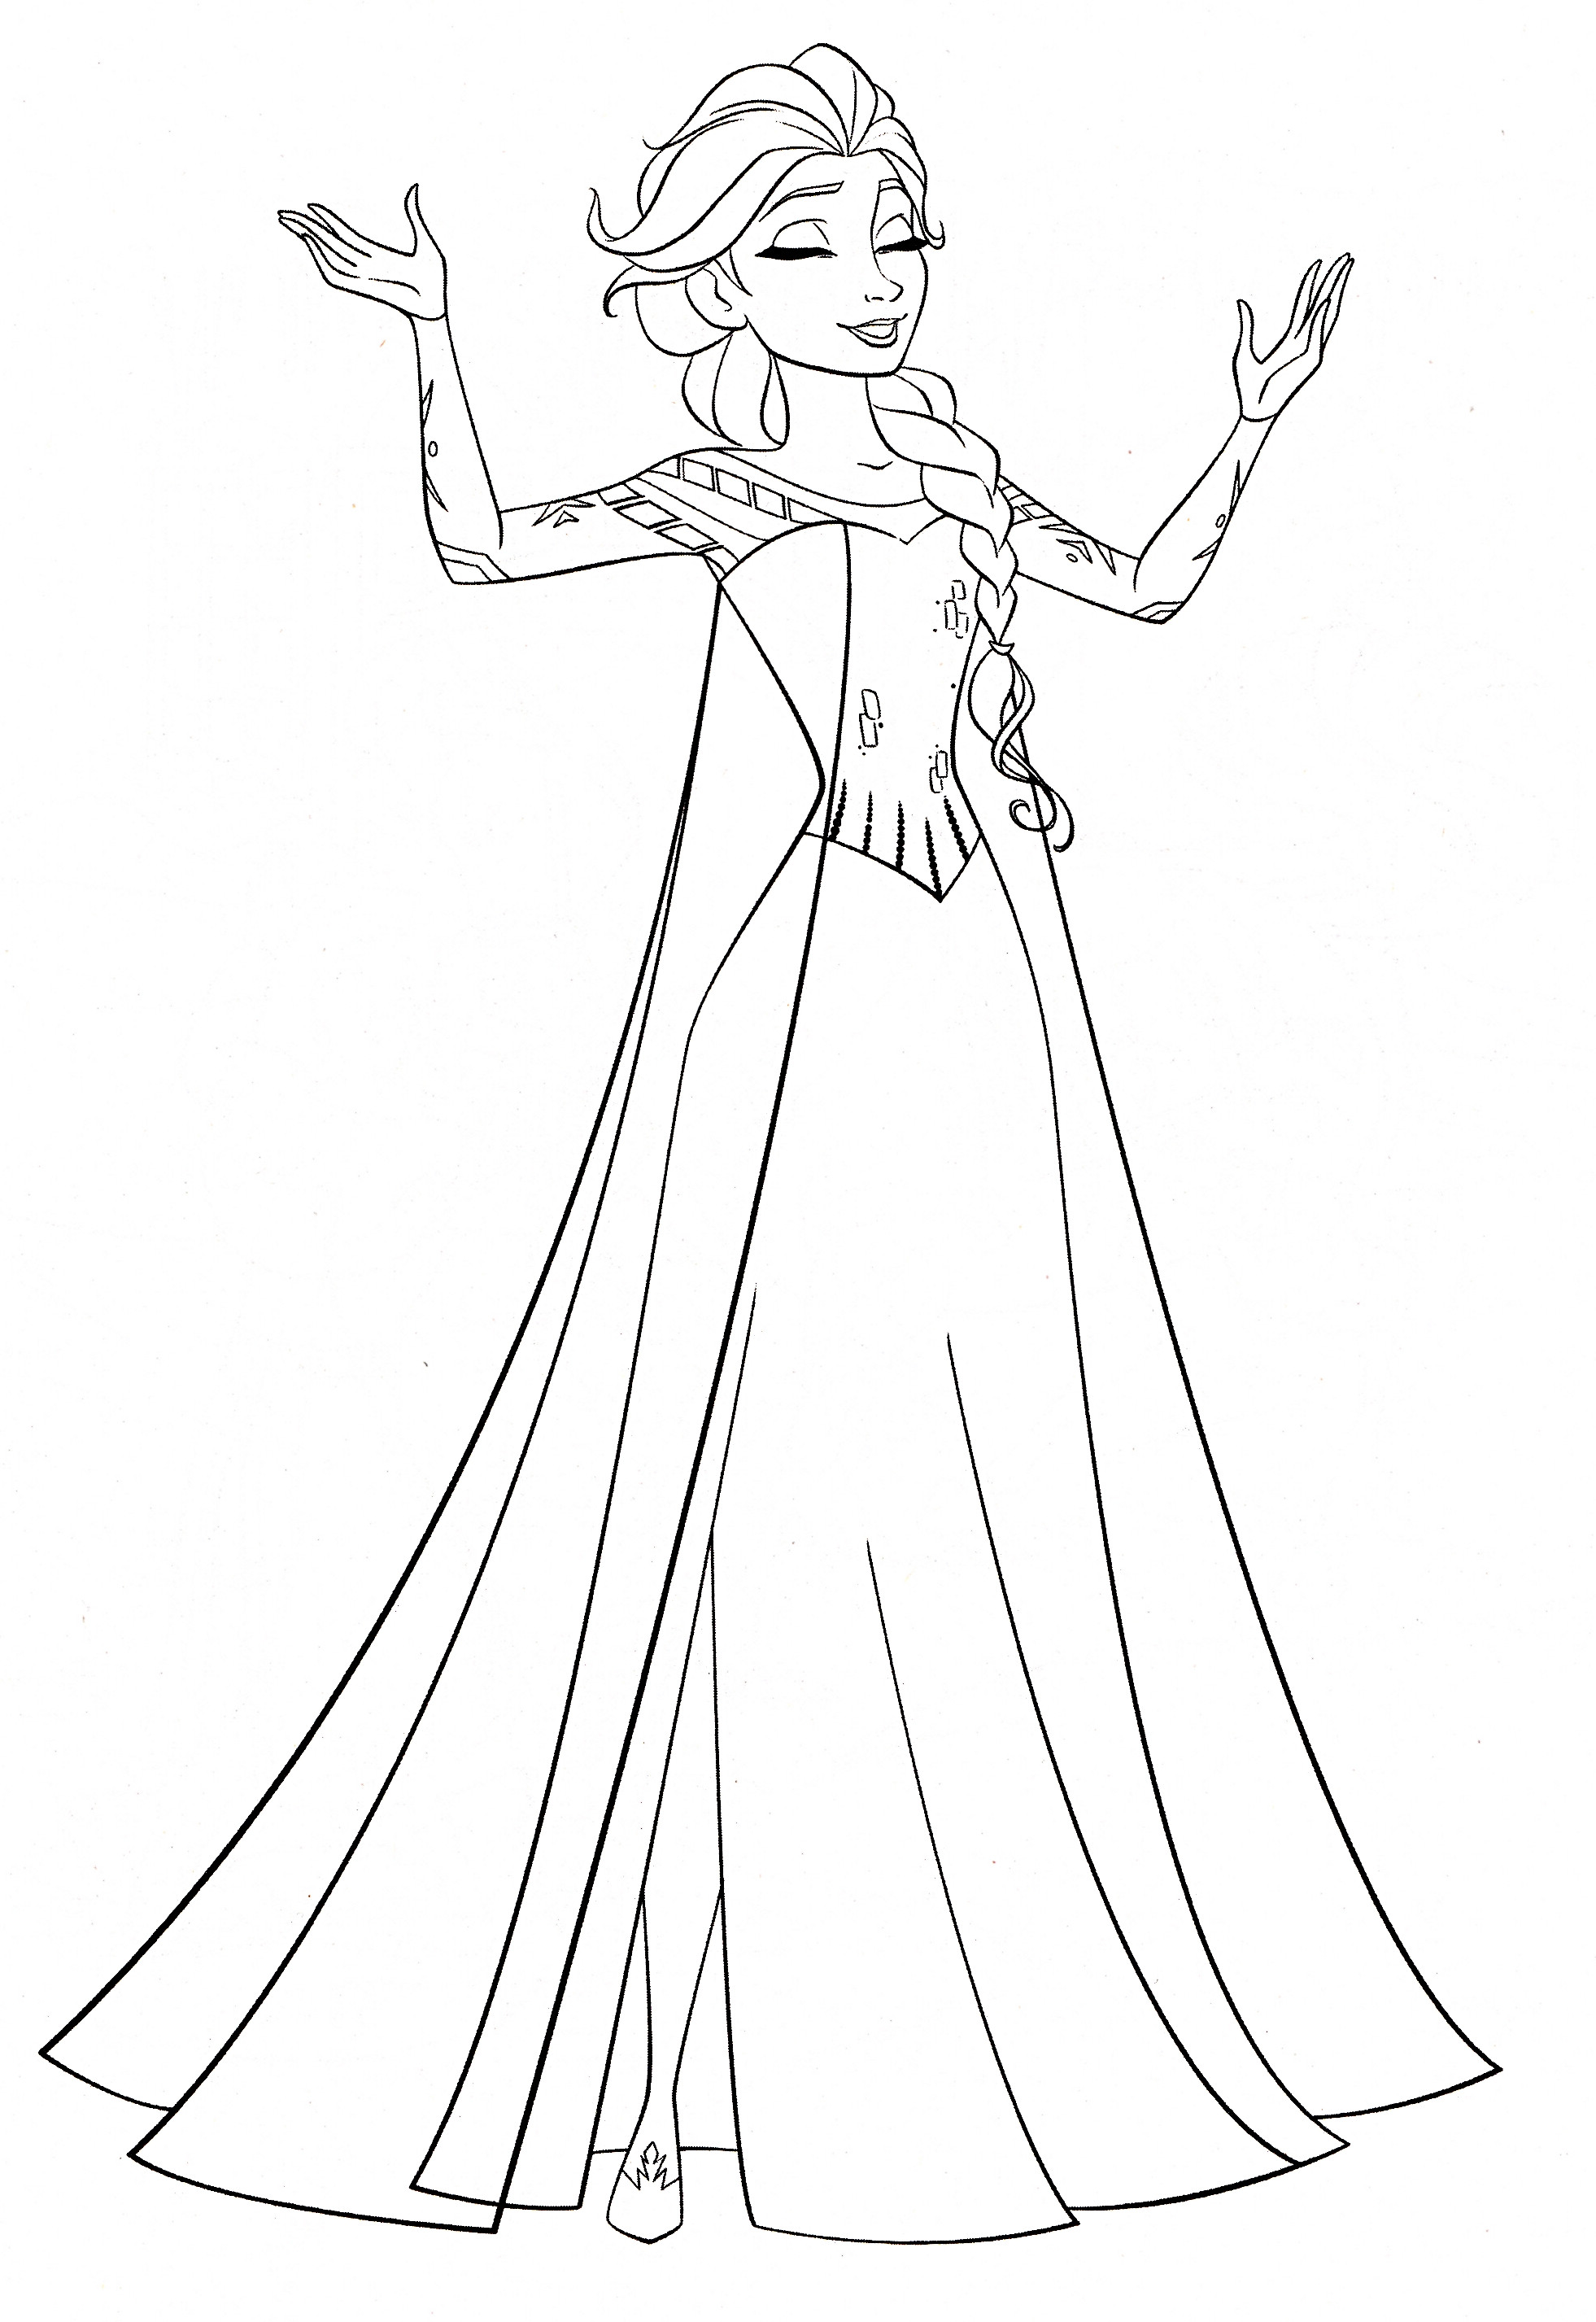 Disney Frozen Coloring Pages  Gallery For Gt Disney Princess Coloring Pages Frozen Elsa